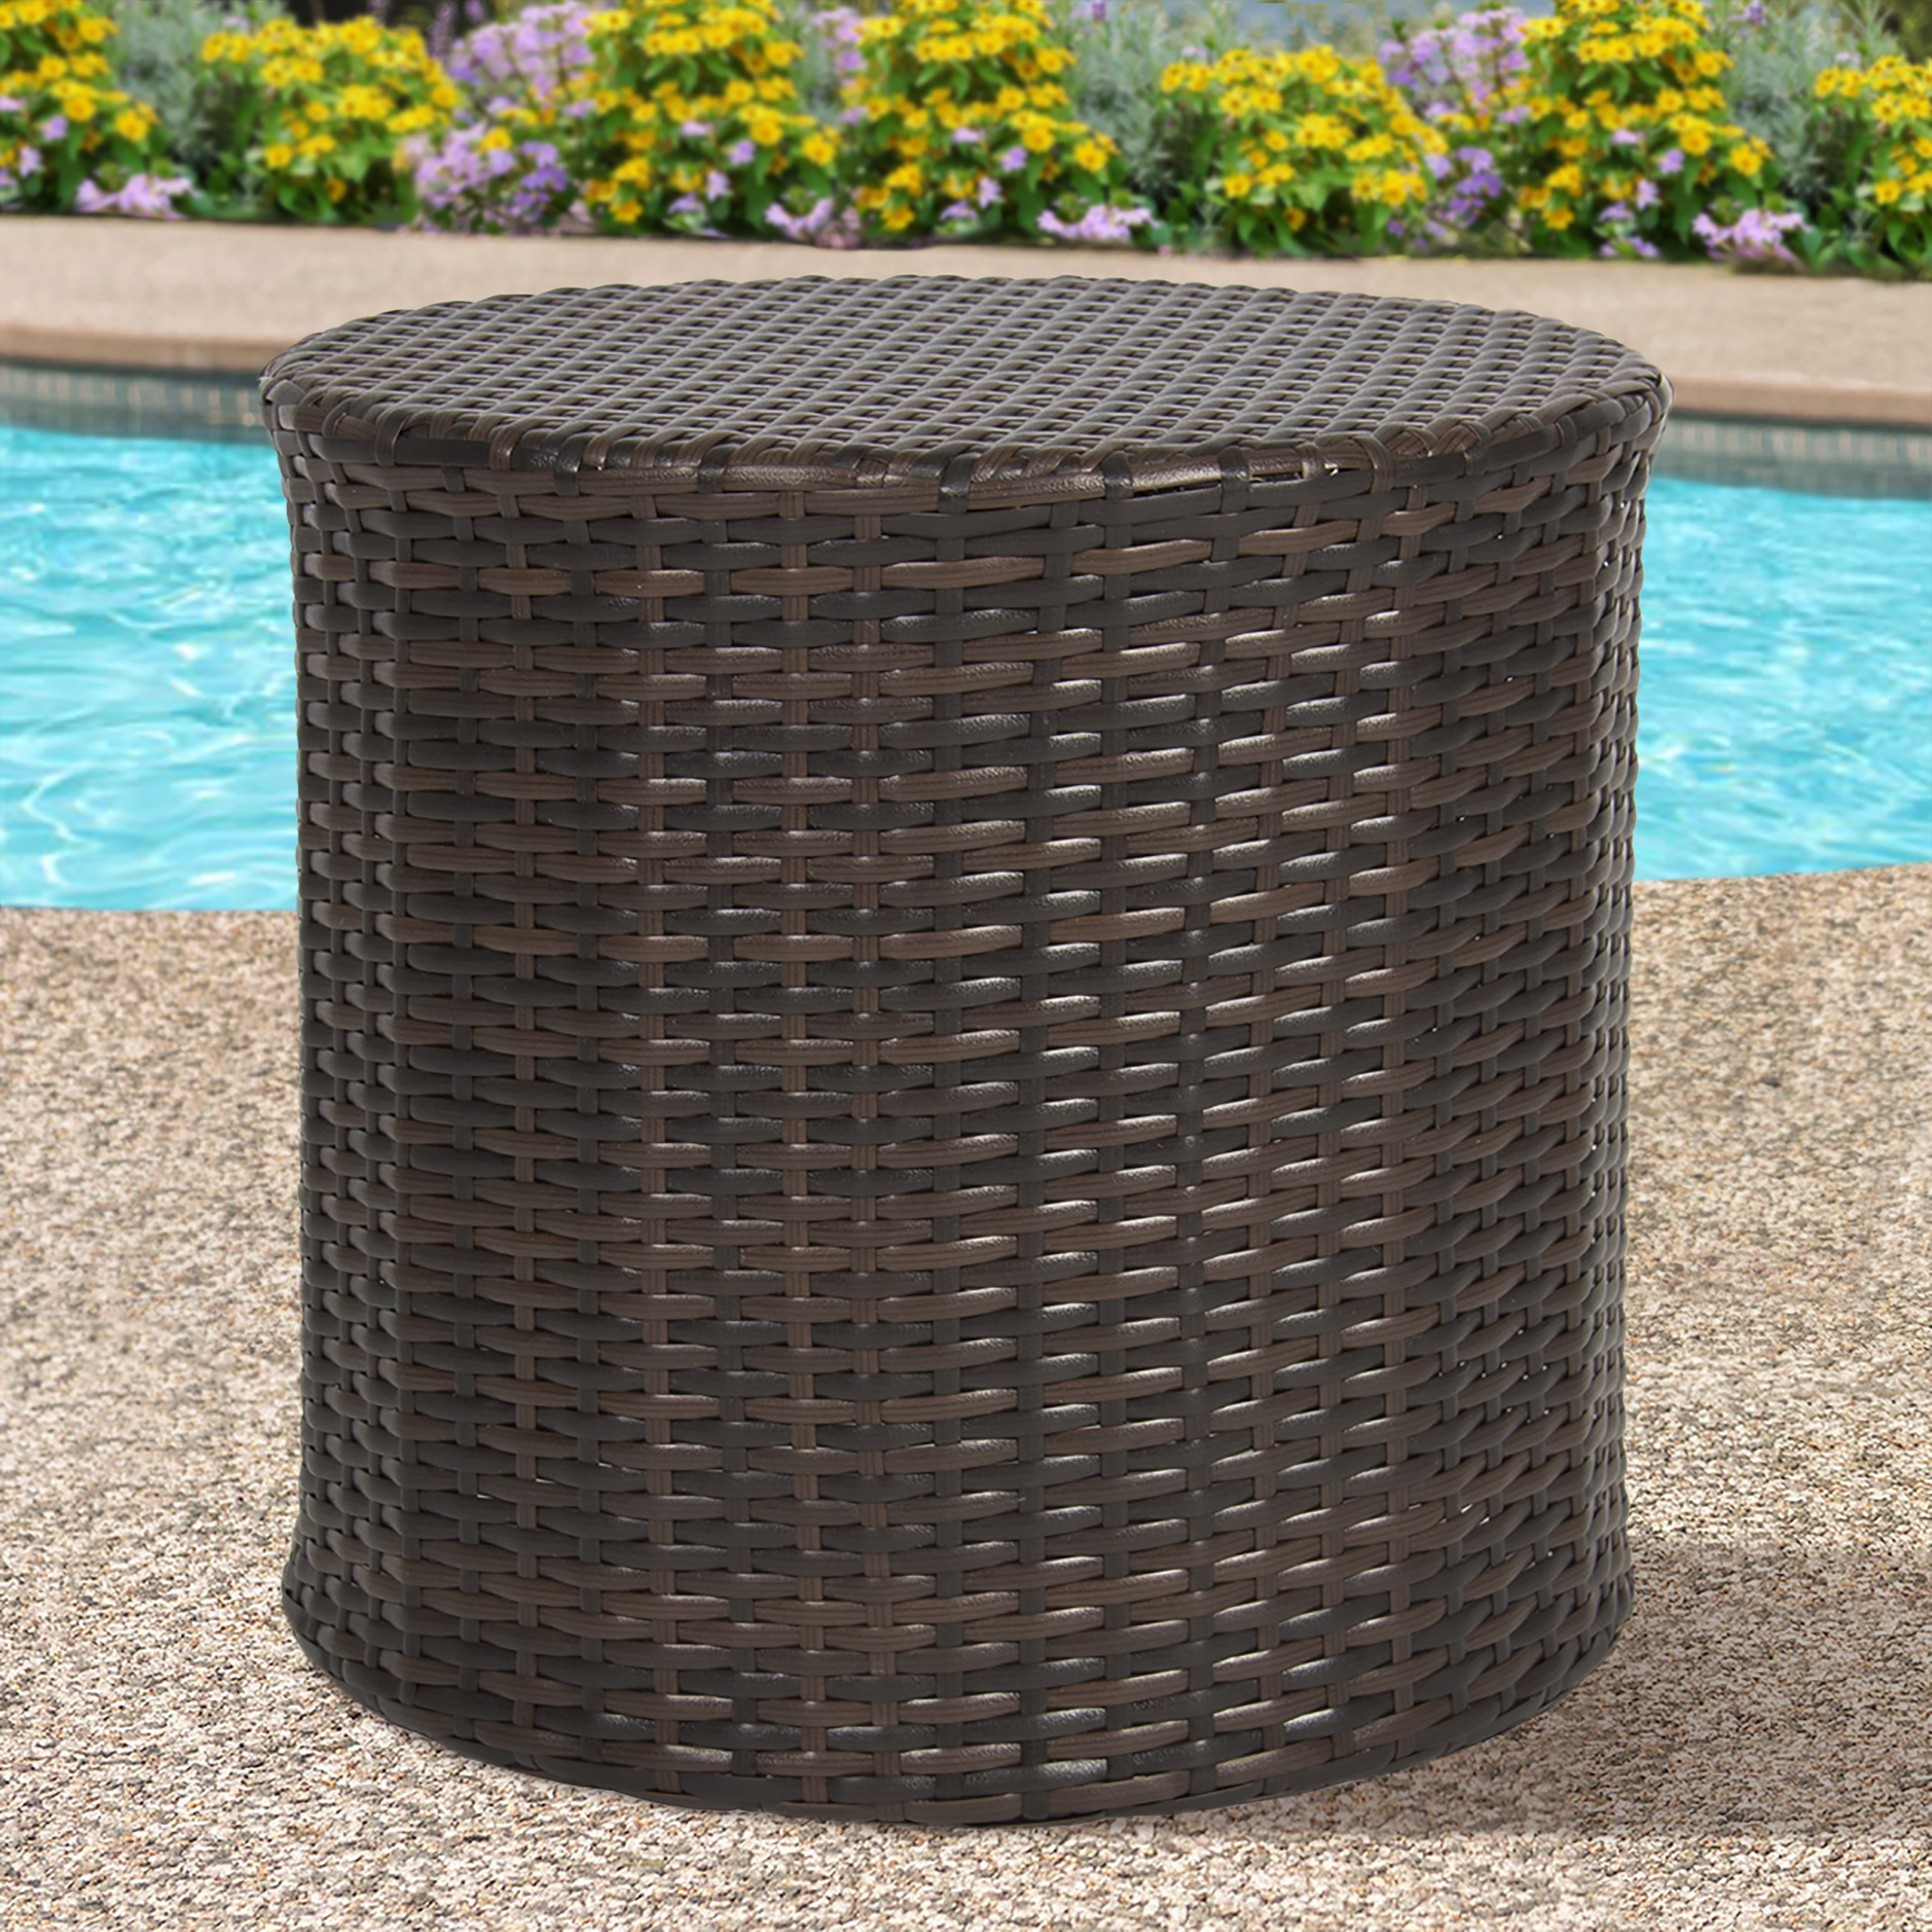 best choice products outdoor wicker rattan barrel side table patio furniture garden backyard pool white marble cast metal accent nate berkus bamboo lamp off nice lamps wood